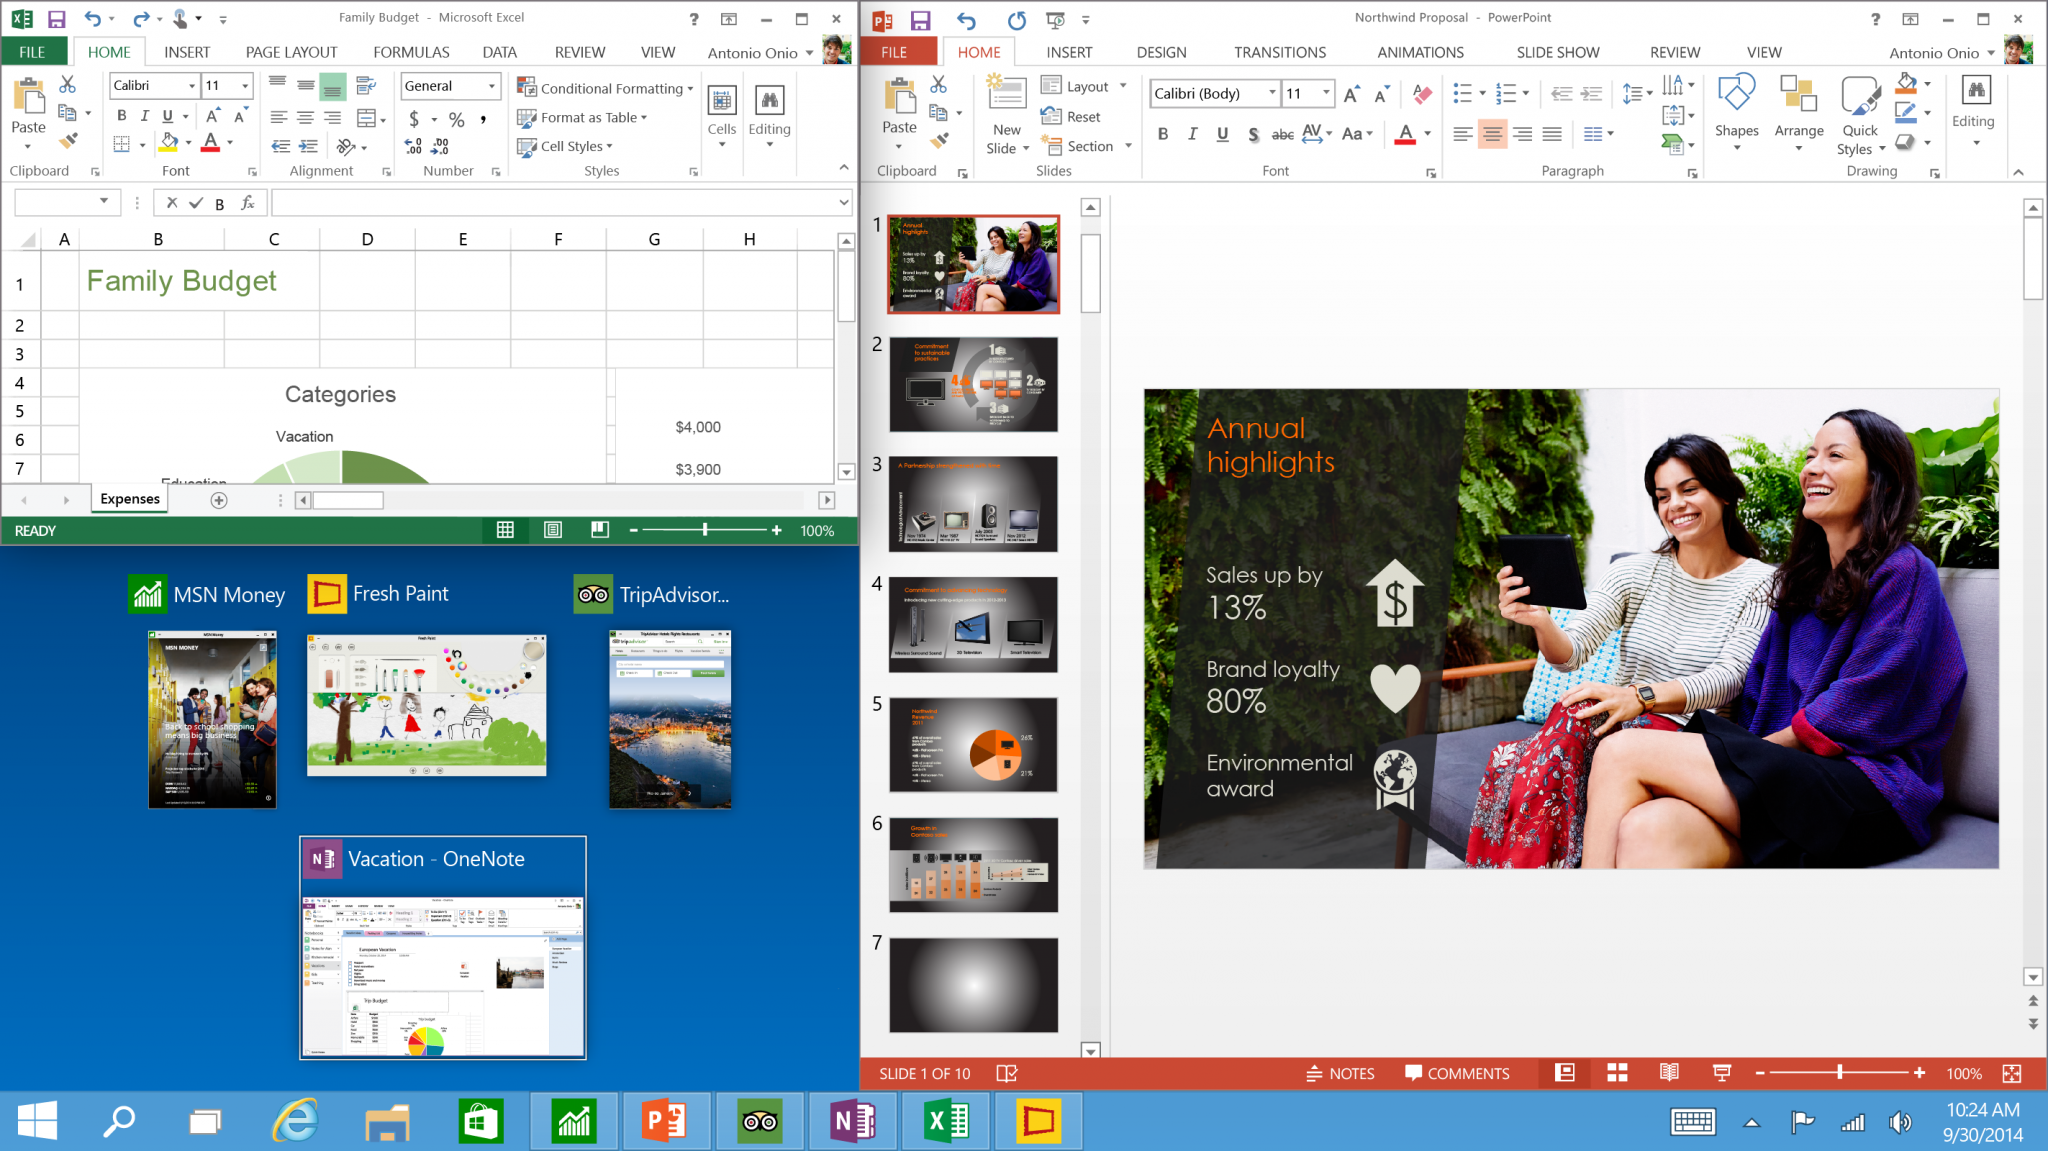 Tech Preview Three program snap and suggestions - Microsoft Unveils Windows 10 with Major Improvements [Download Link Here]